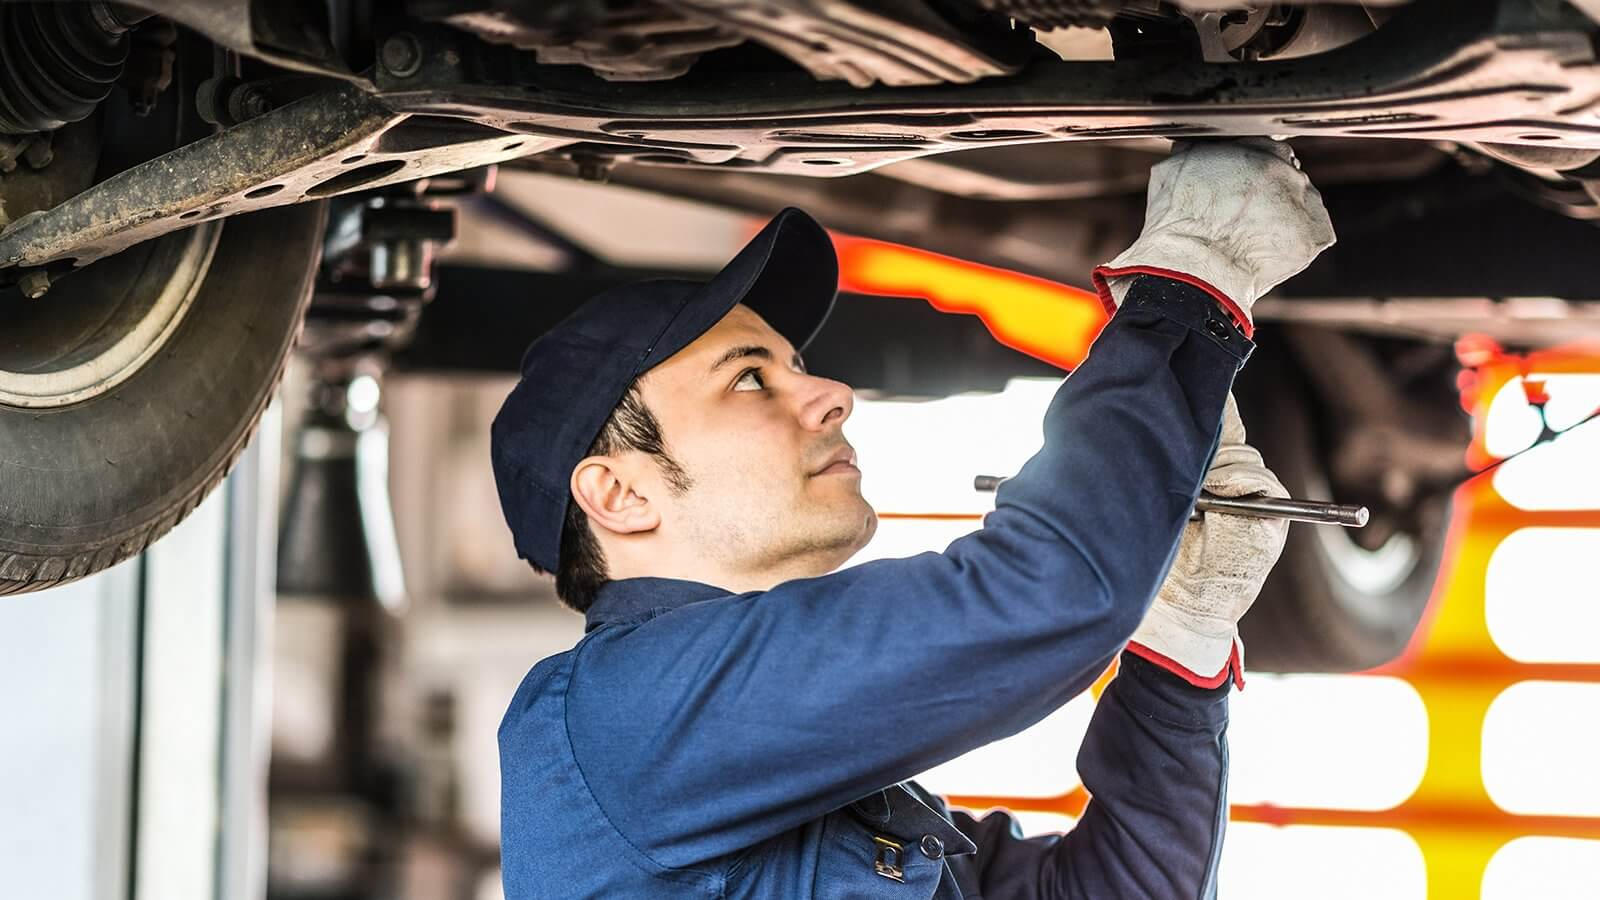 Fix Your Car Problems For Free Through A 'Secret' Auto Warranty